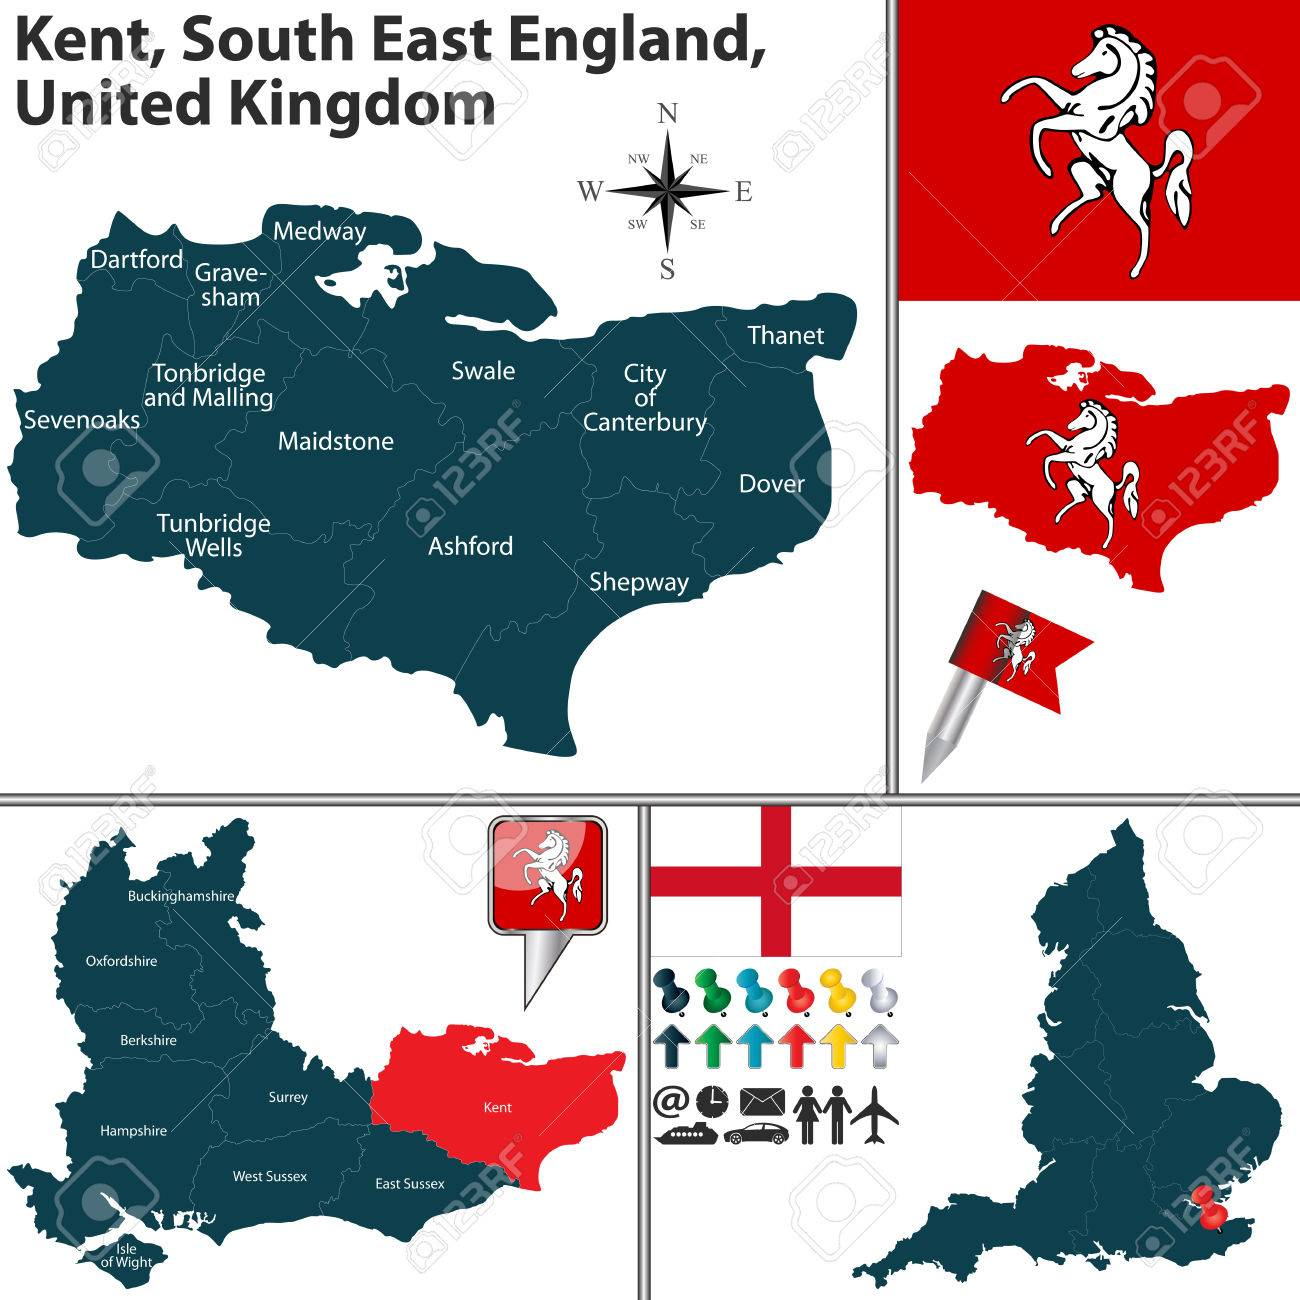 Kent Map Of England.Vector Map Of Kent South East England United Kingdom With Regions